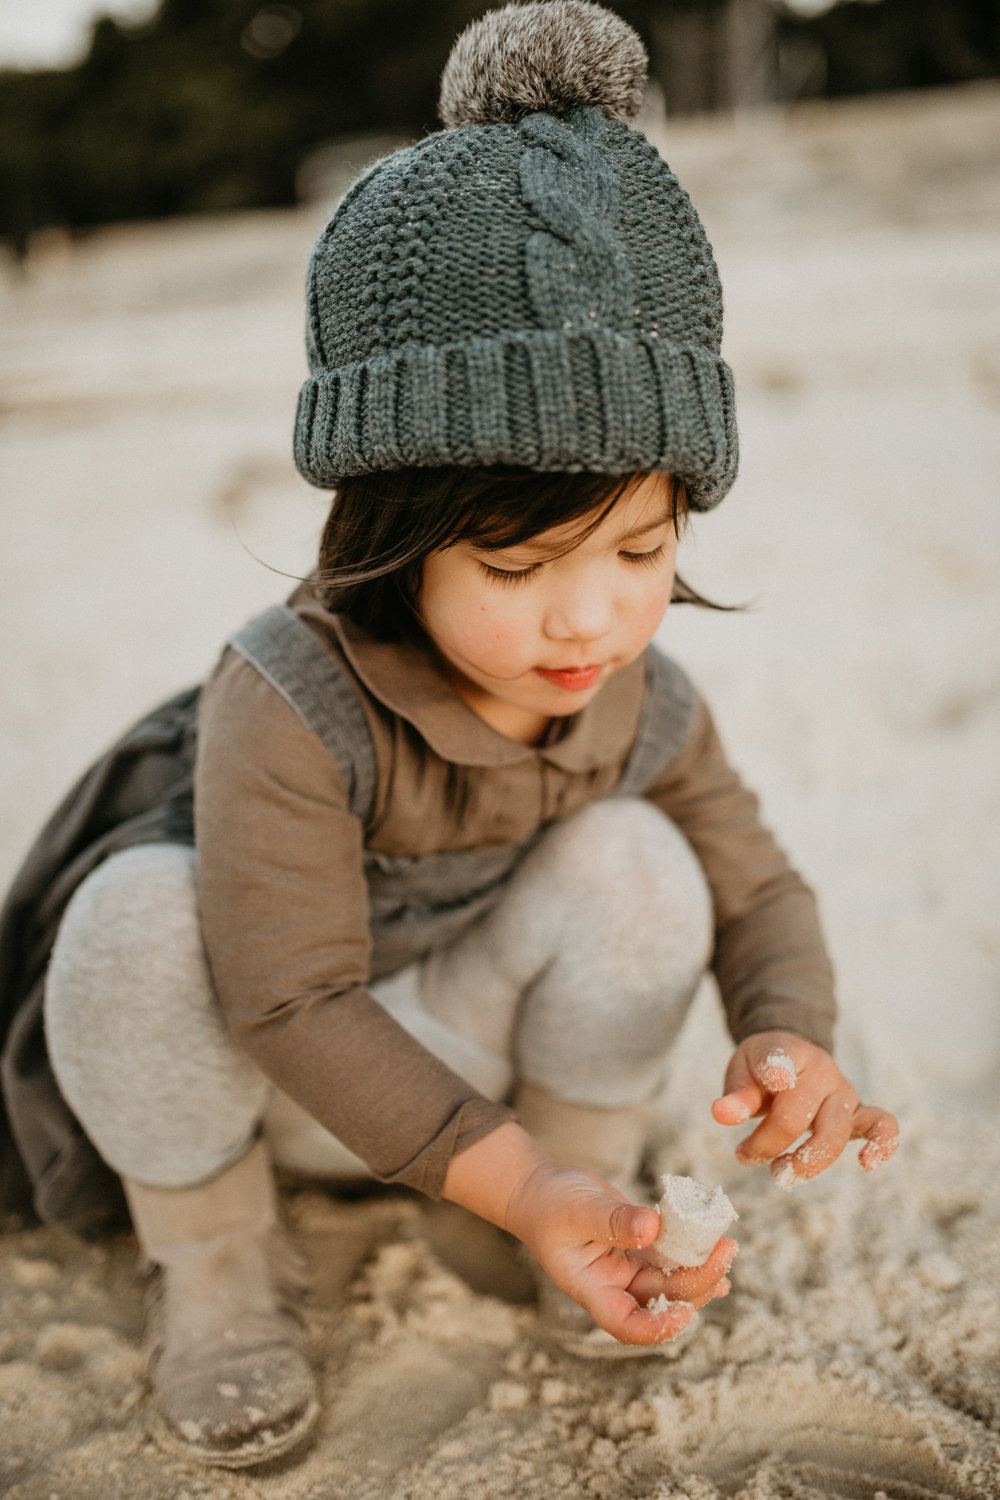 Beach Natural Children Photography Session-1.jpg